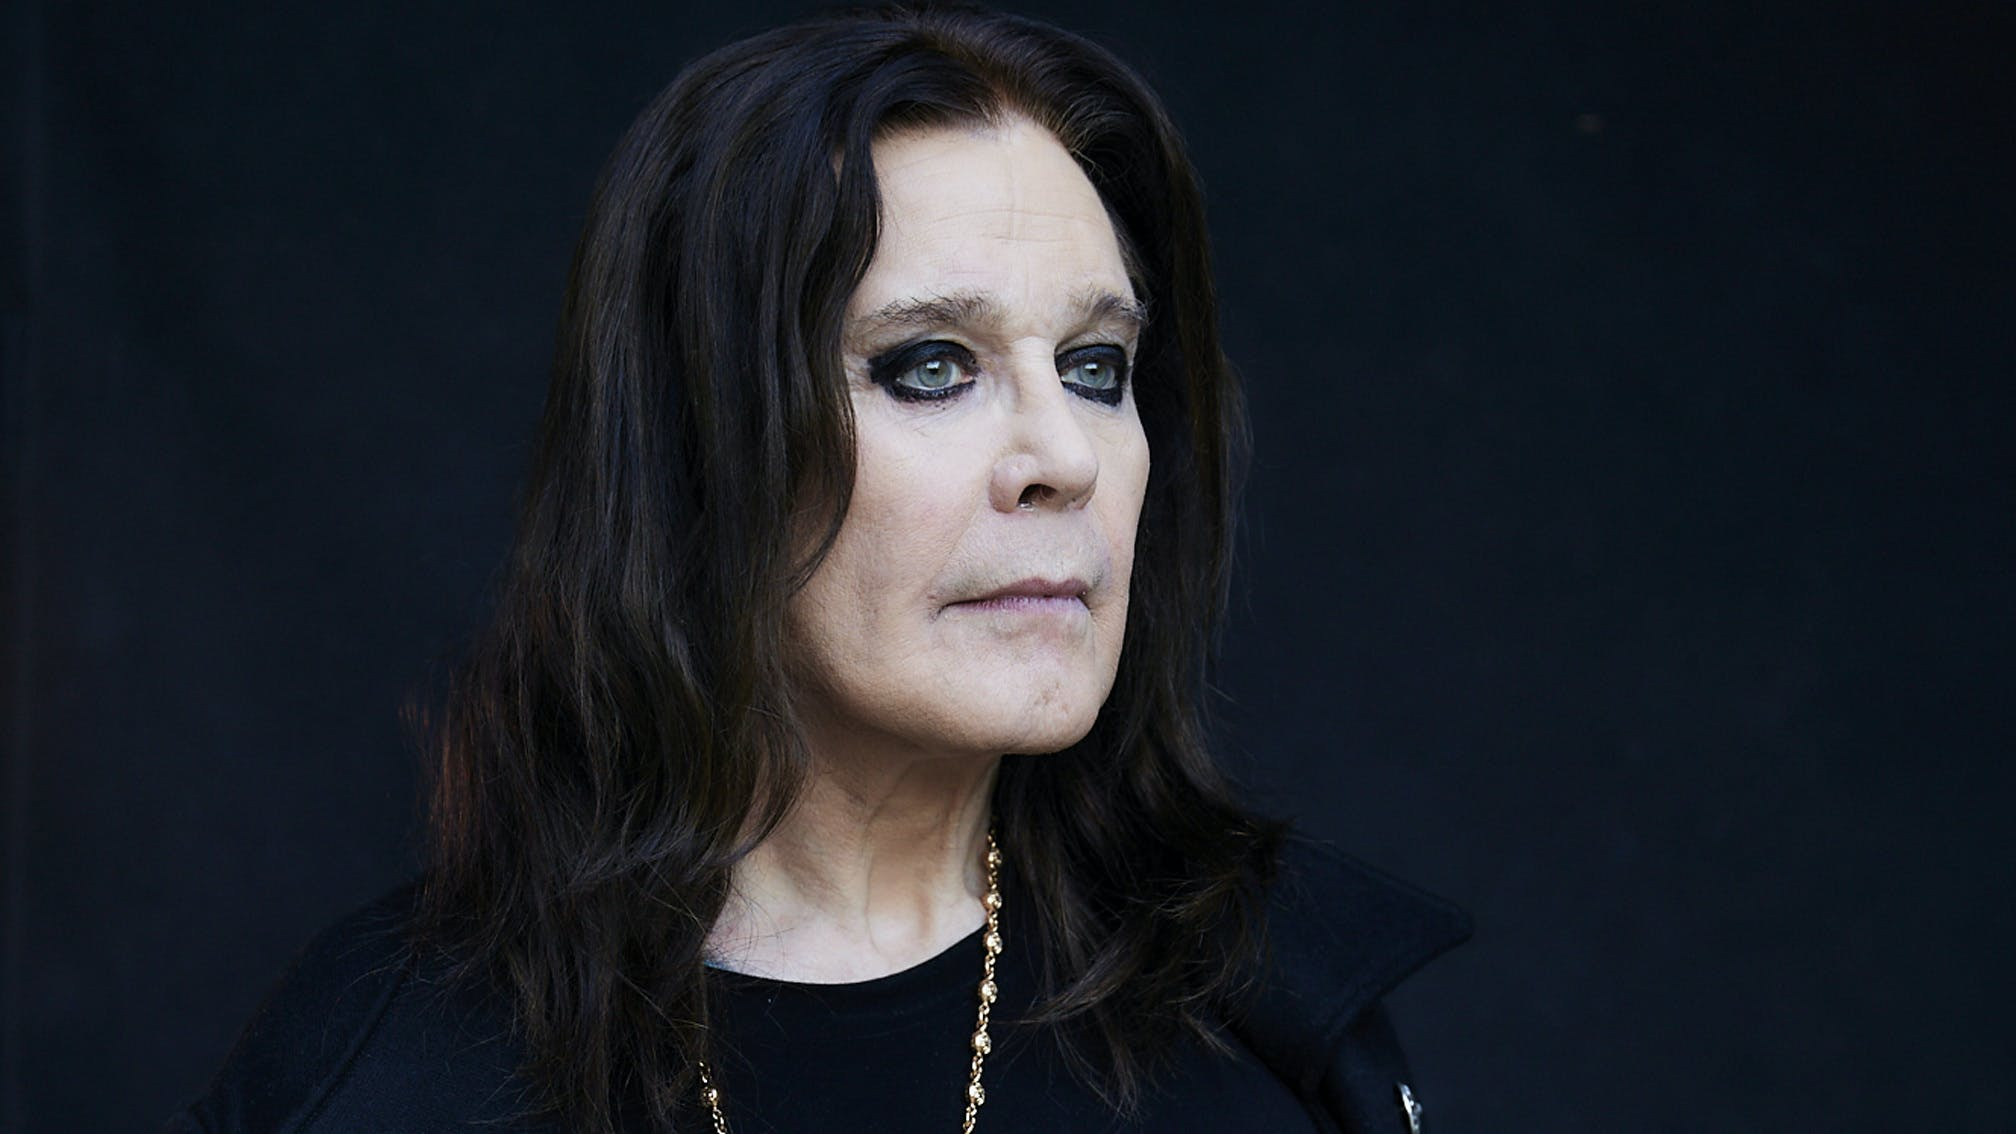 Ozzy Osbourne Has Canceled His North American Tour - Kerrang!